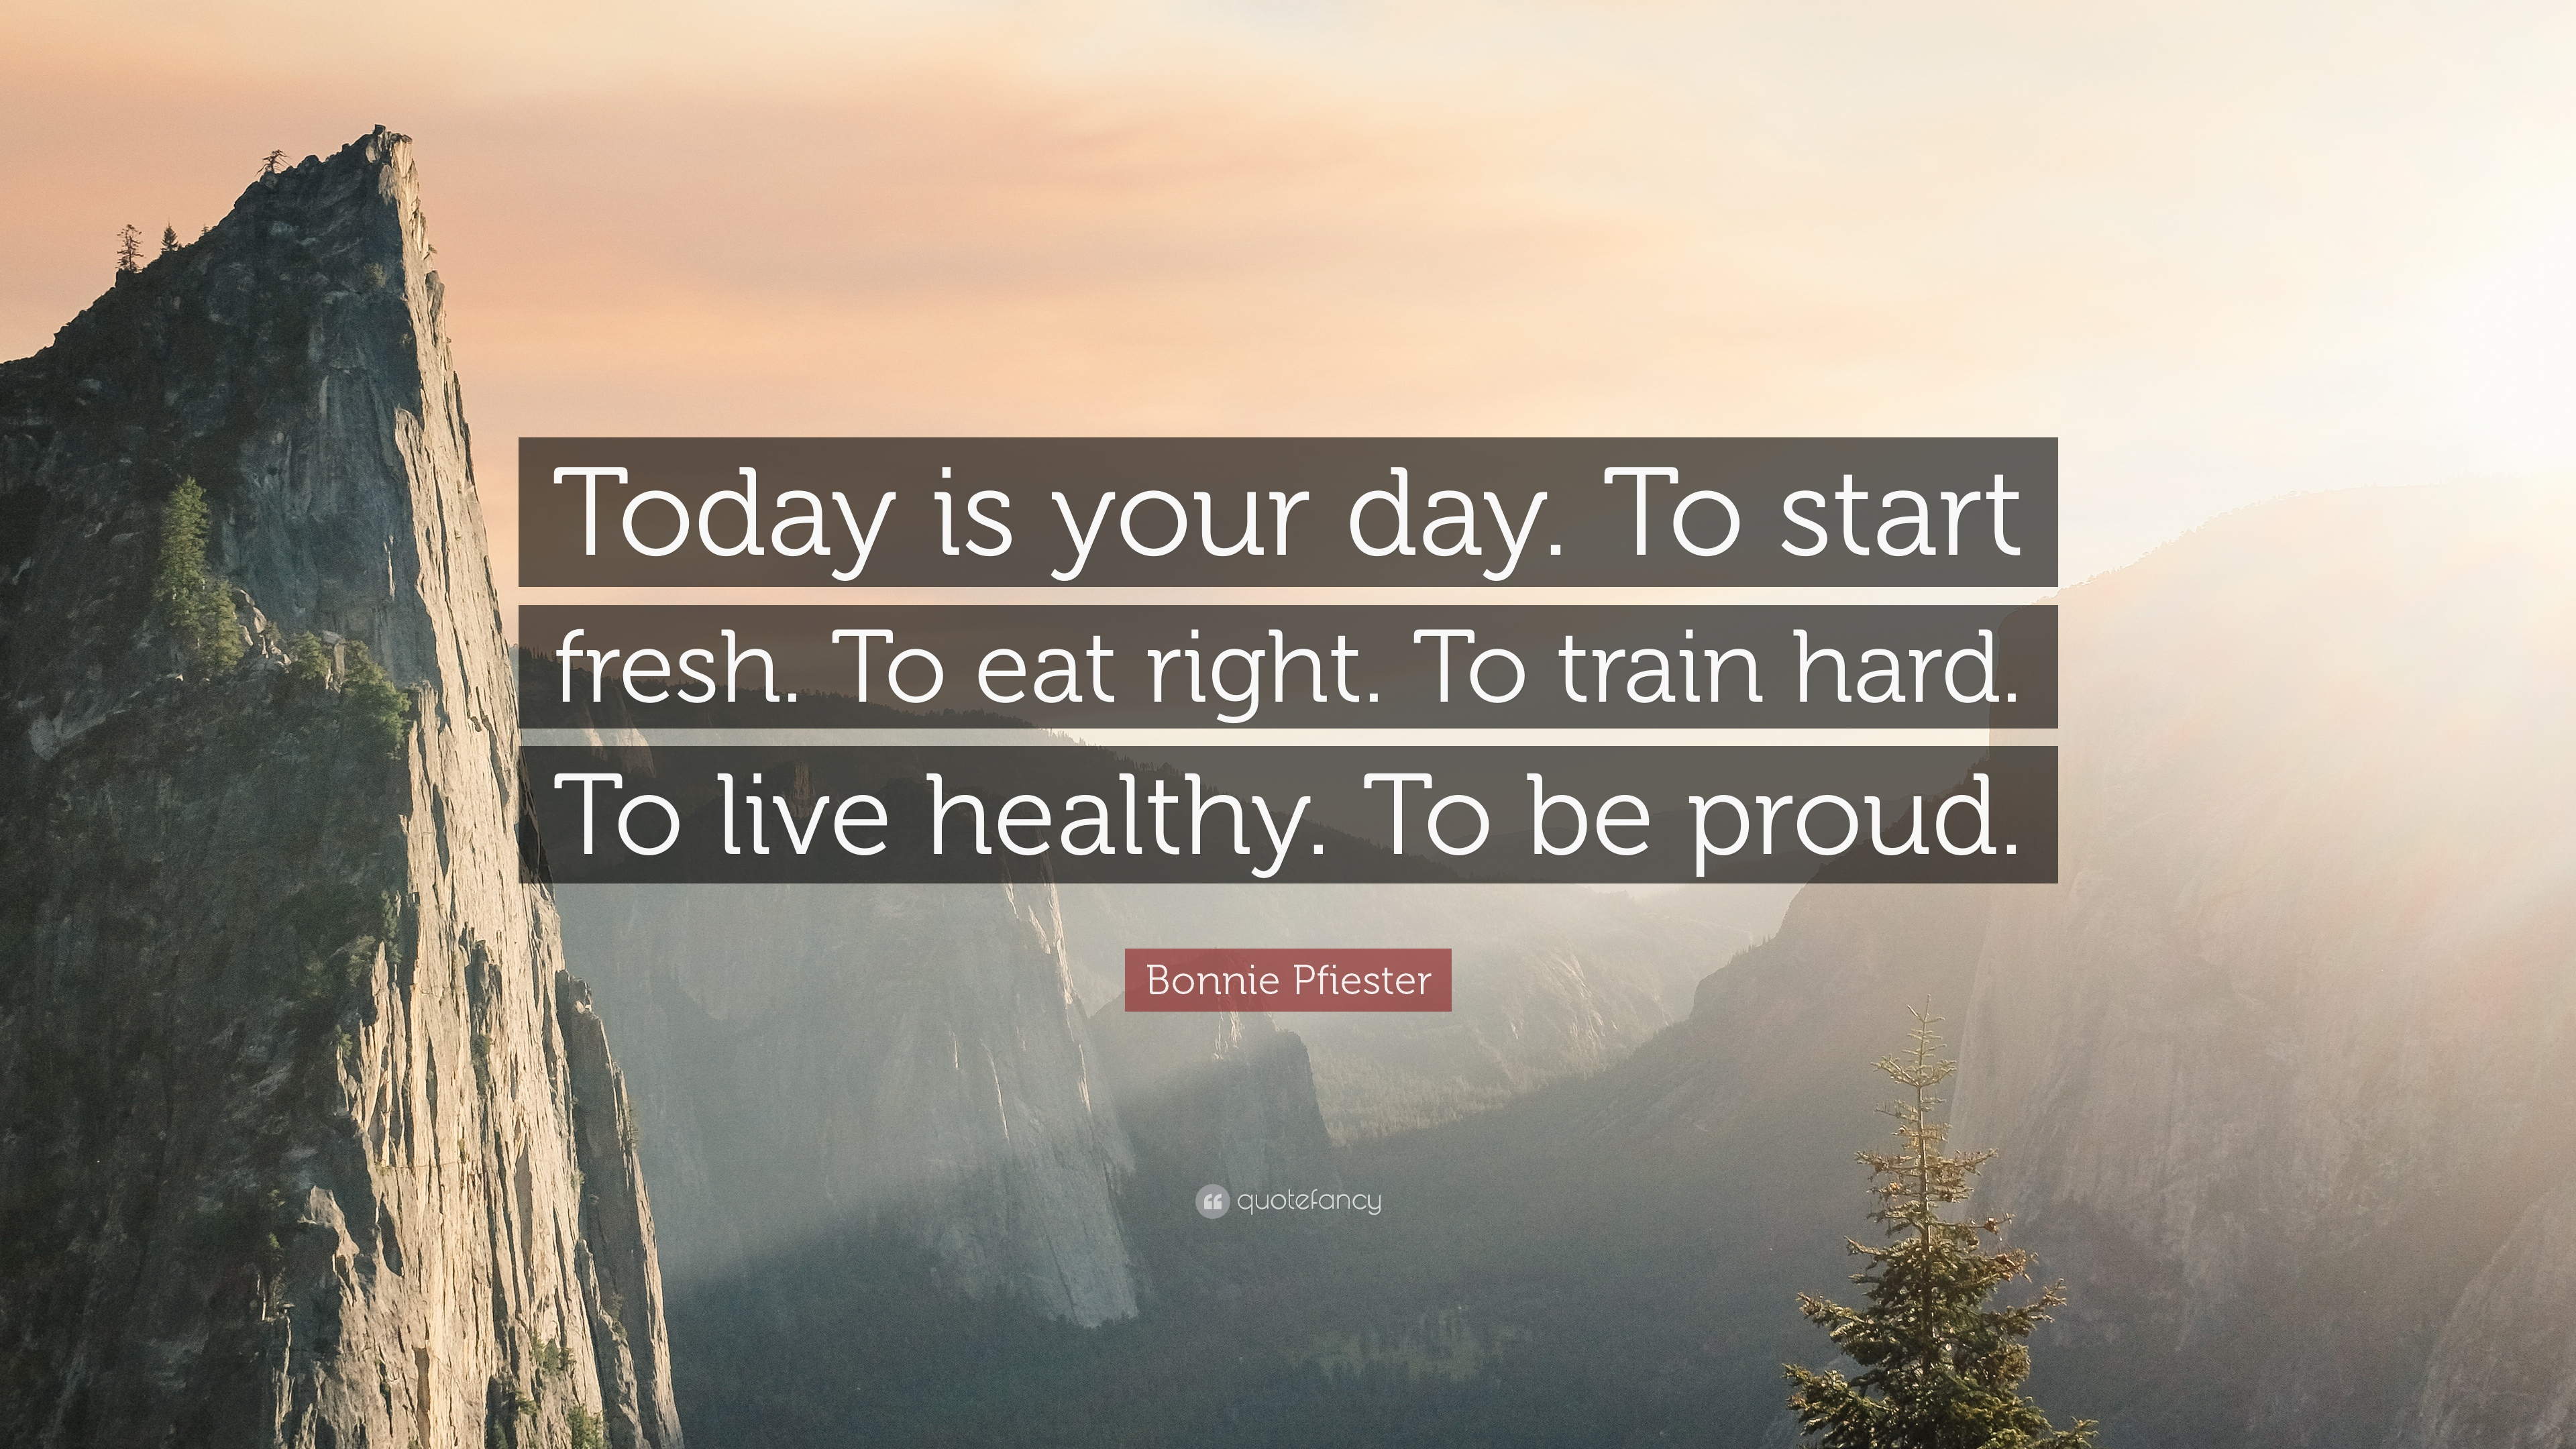 bonnie pfiester quote today is your day to start fresh to eat right to train hard to live. Black Bedroom Furniture Sets. Home Design Ideas